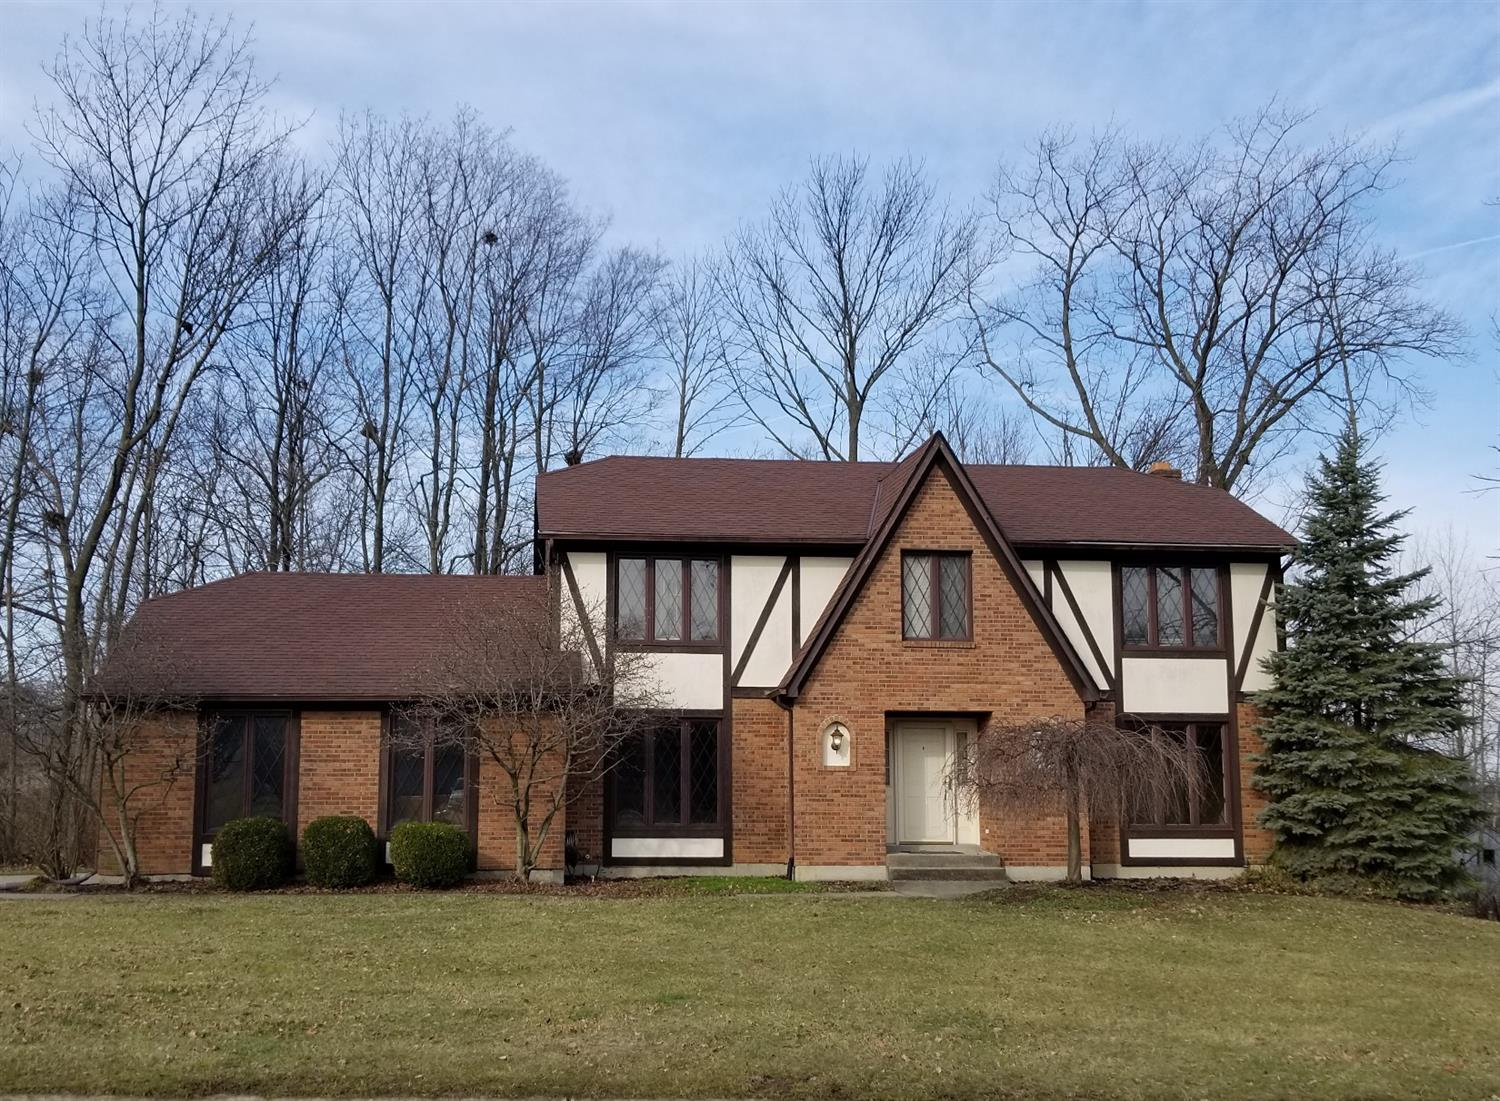 7194 Timbernoll Dr West Chester - East, OH